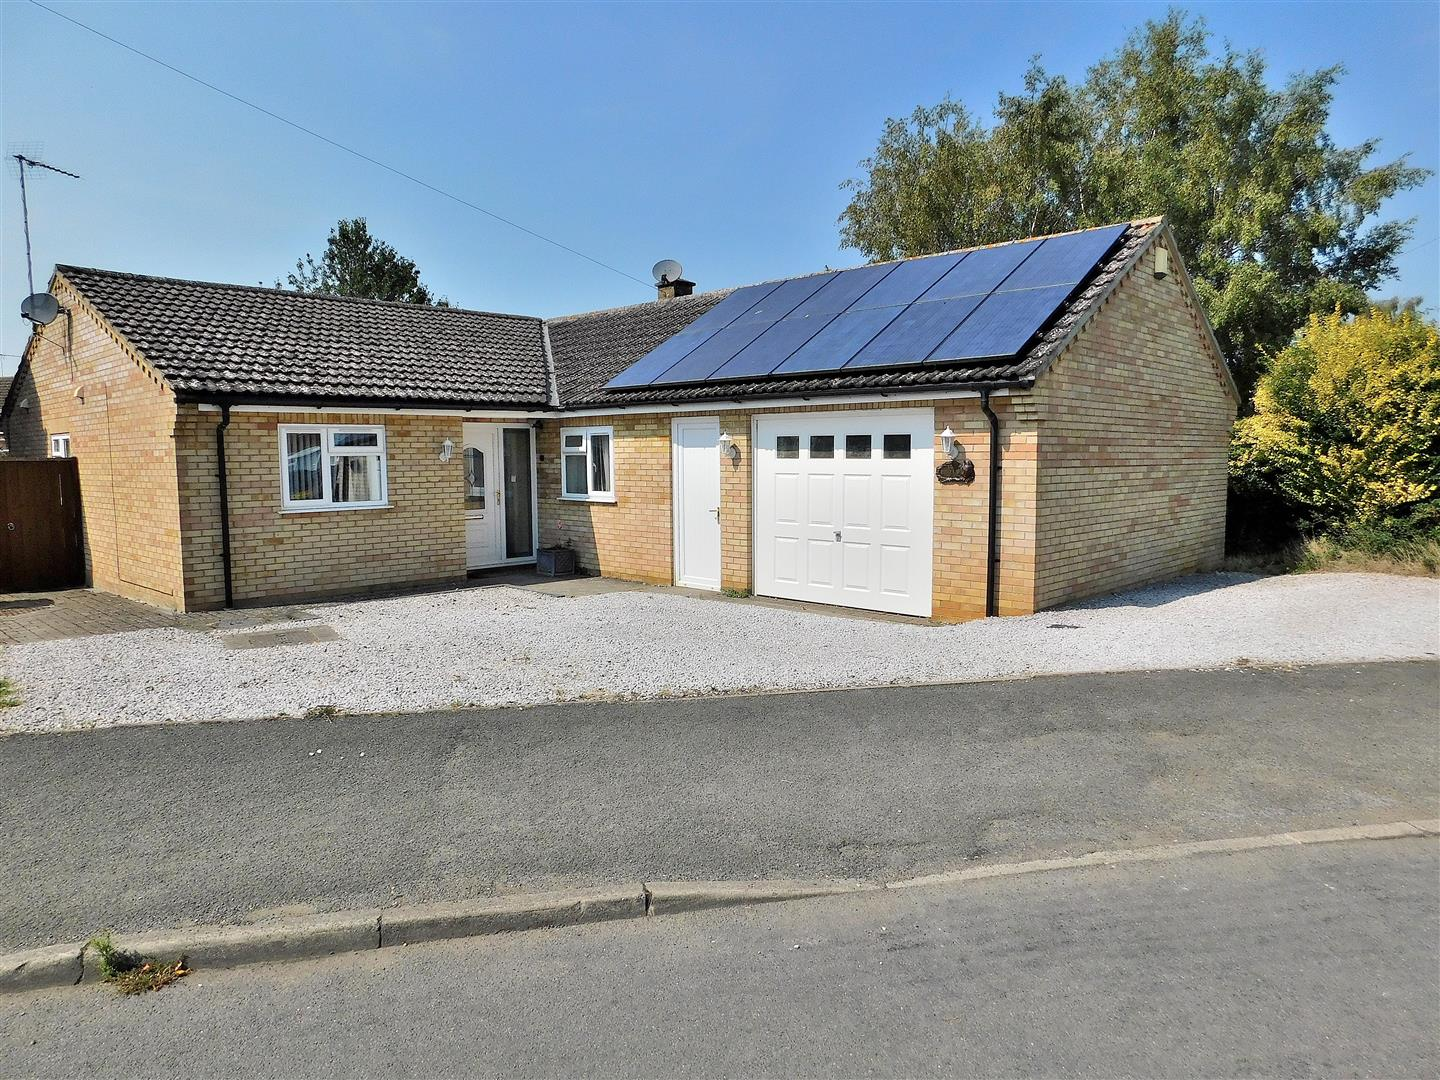 4 bed detached bungalow for sale in King's Lynn, PE30 3EG  - Property Image 1